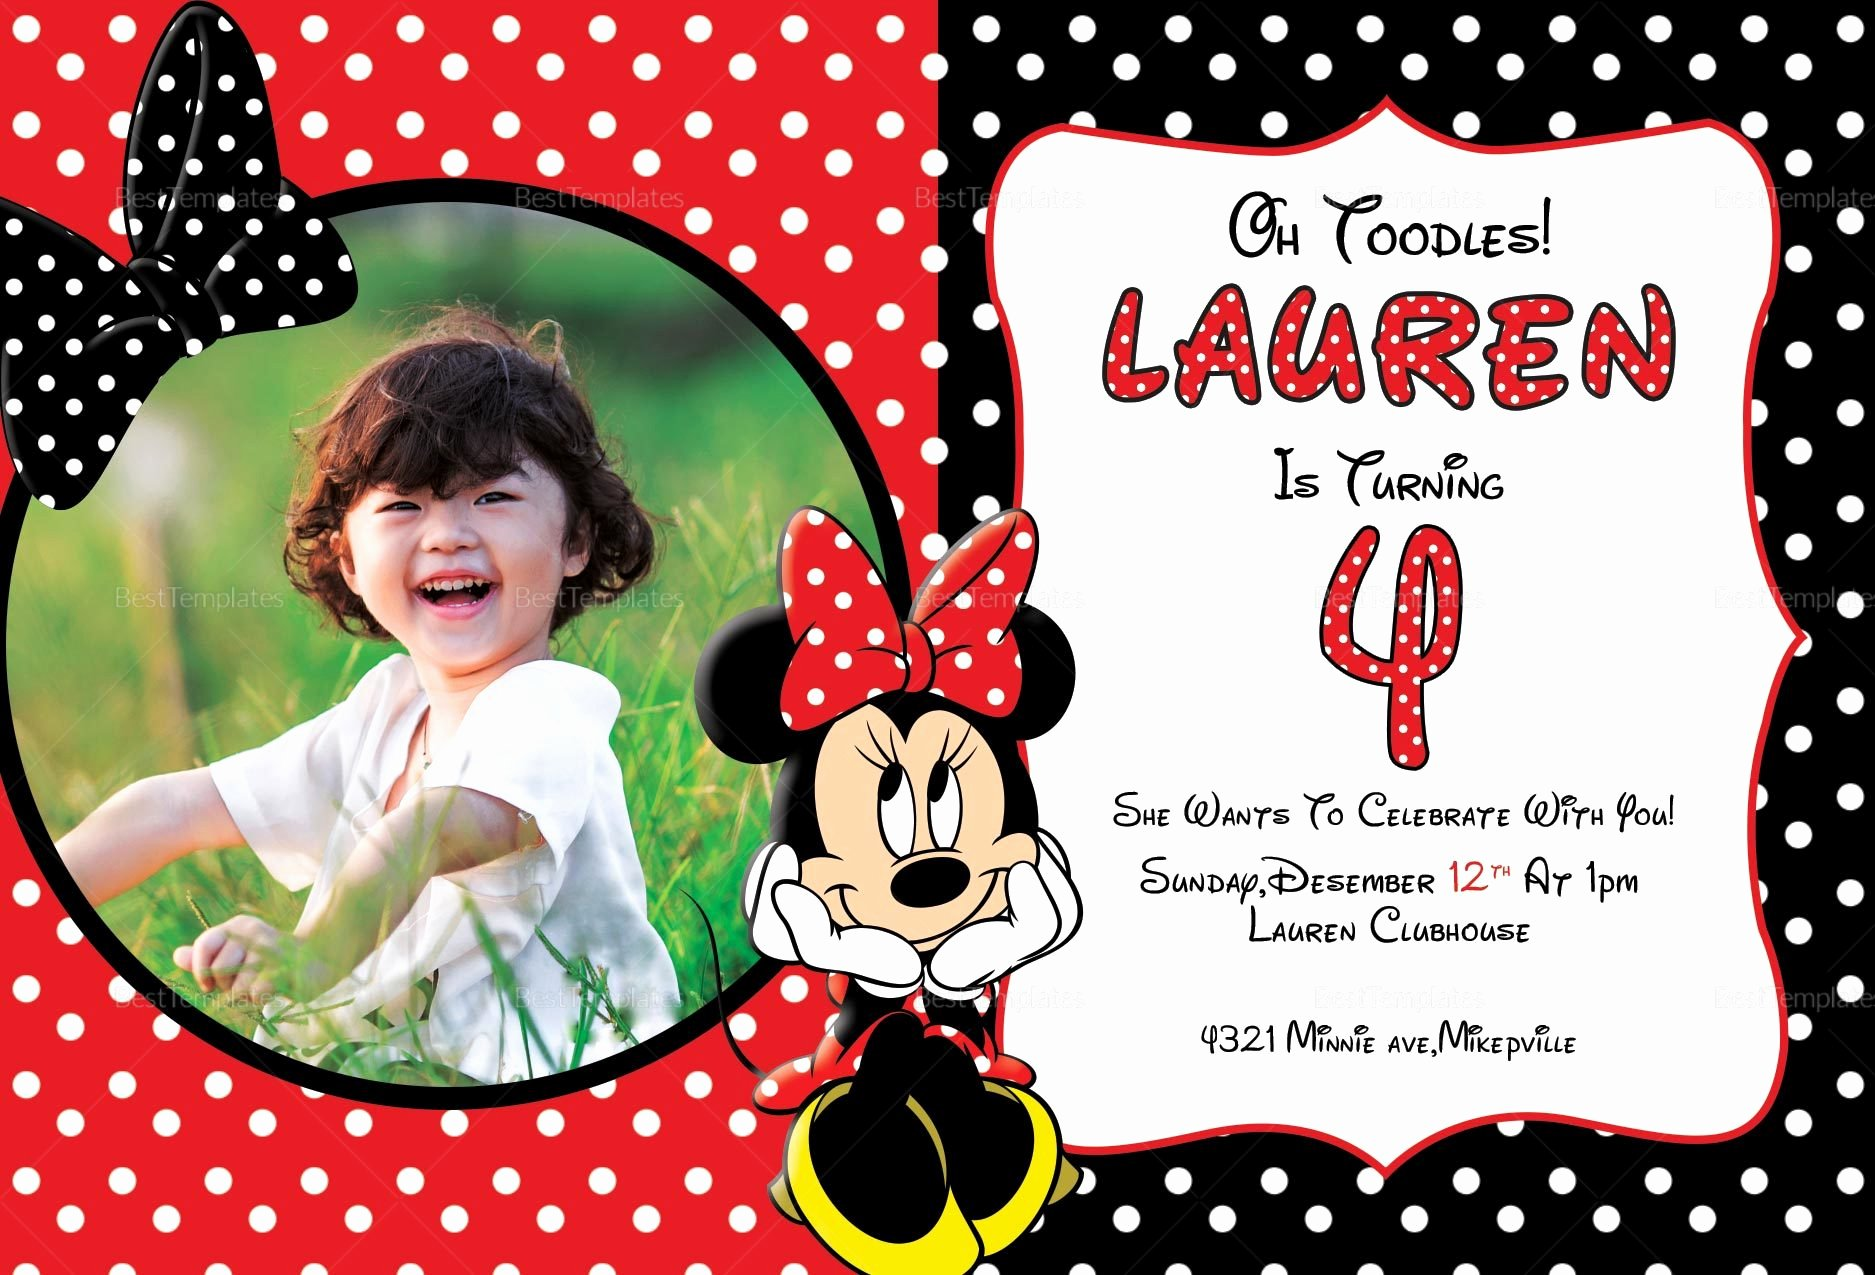 Minnie Mouse Invitation Card Inspirational Minnie Mouse Invitation Card Design Template In Word Psd Publisher